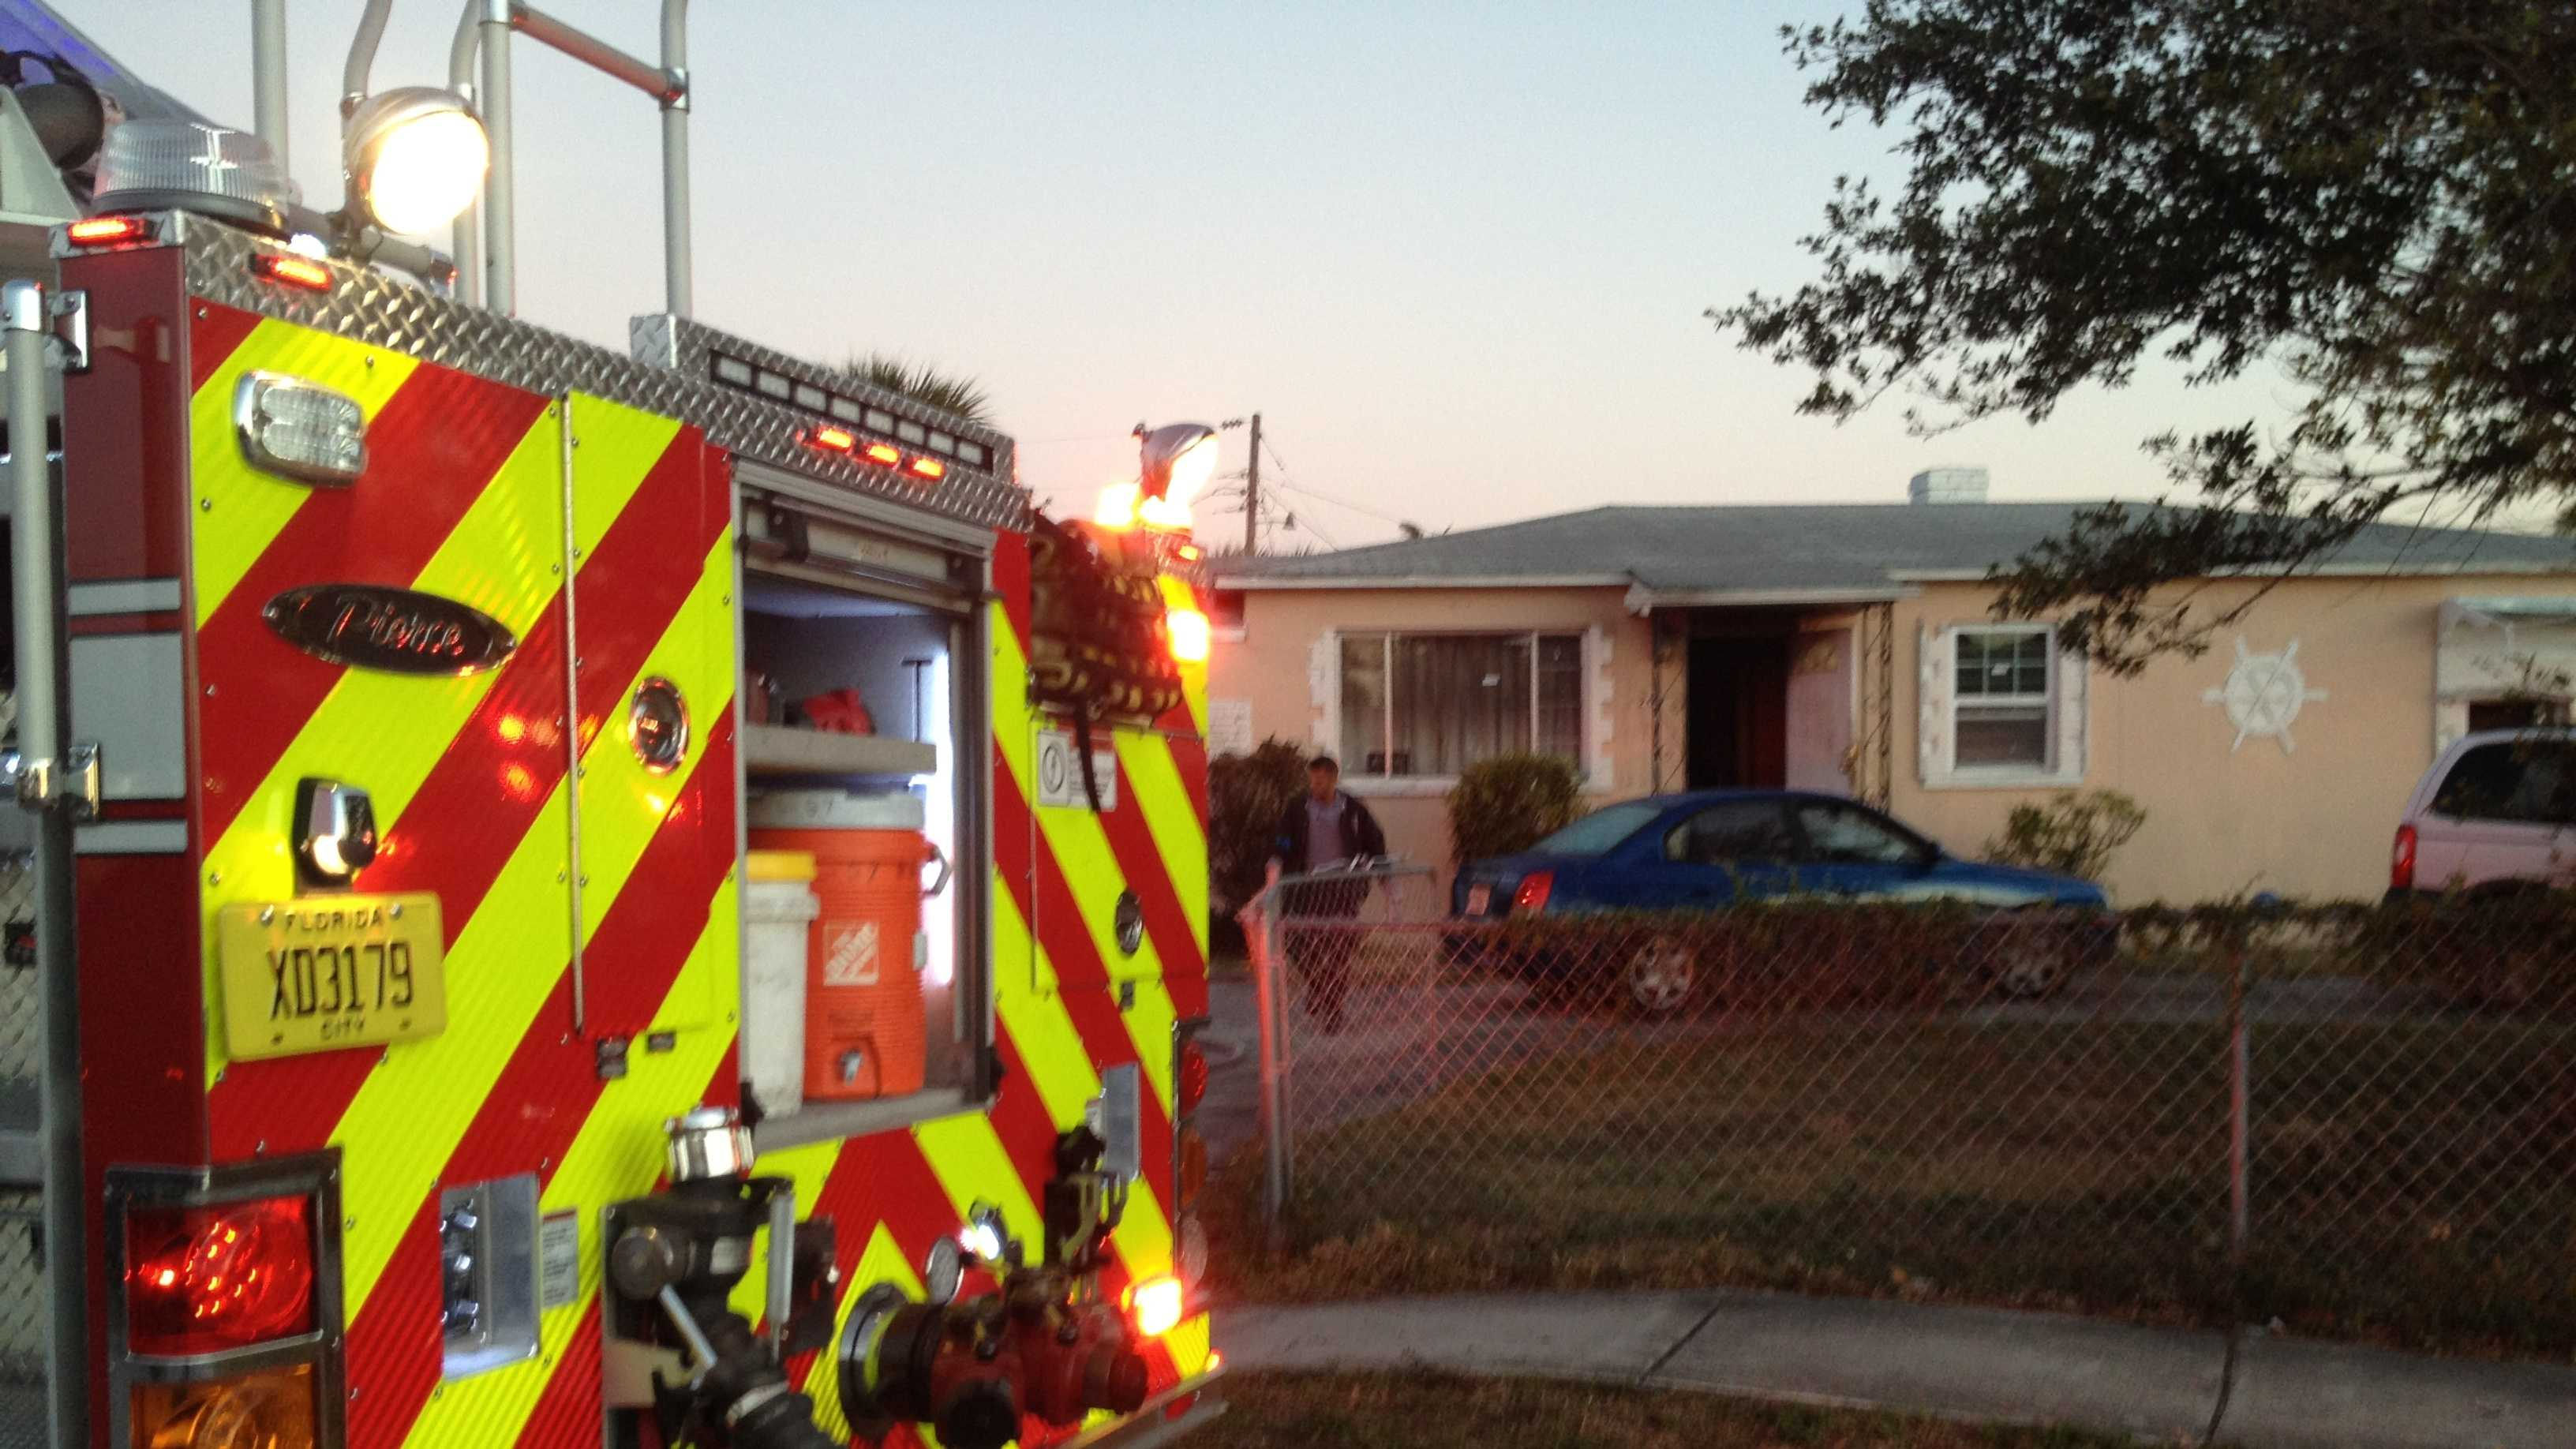 A family of three is OK after flames broke out at their home early Tuesday morning. (Photo: Chris McGrath/WPBF)